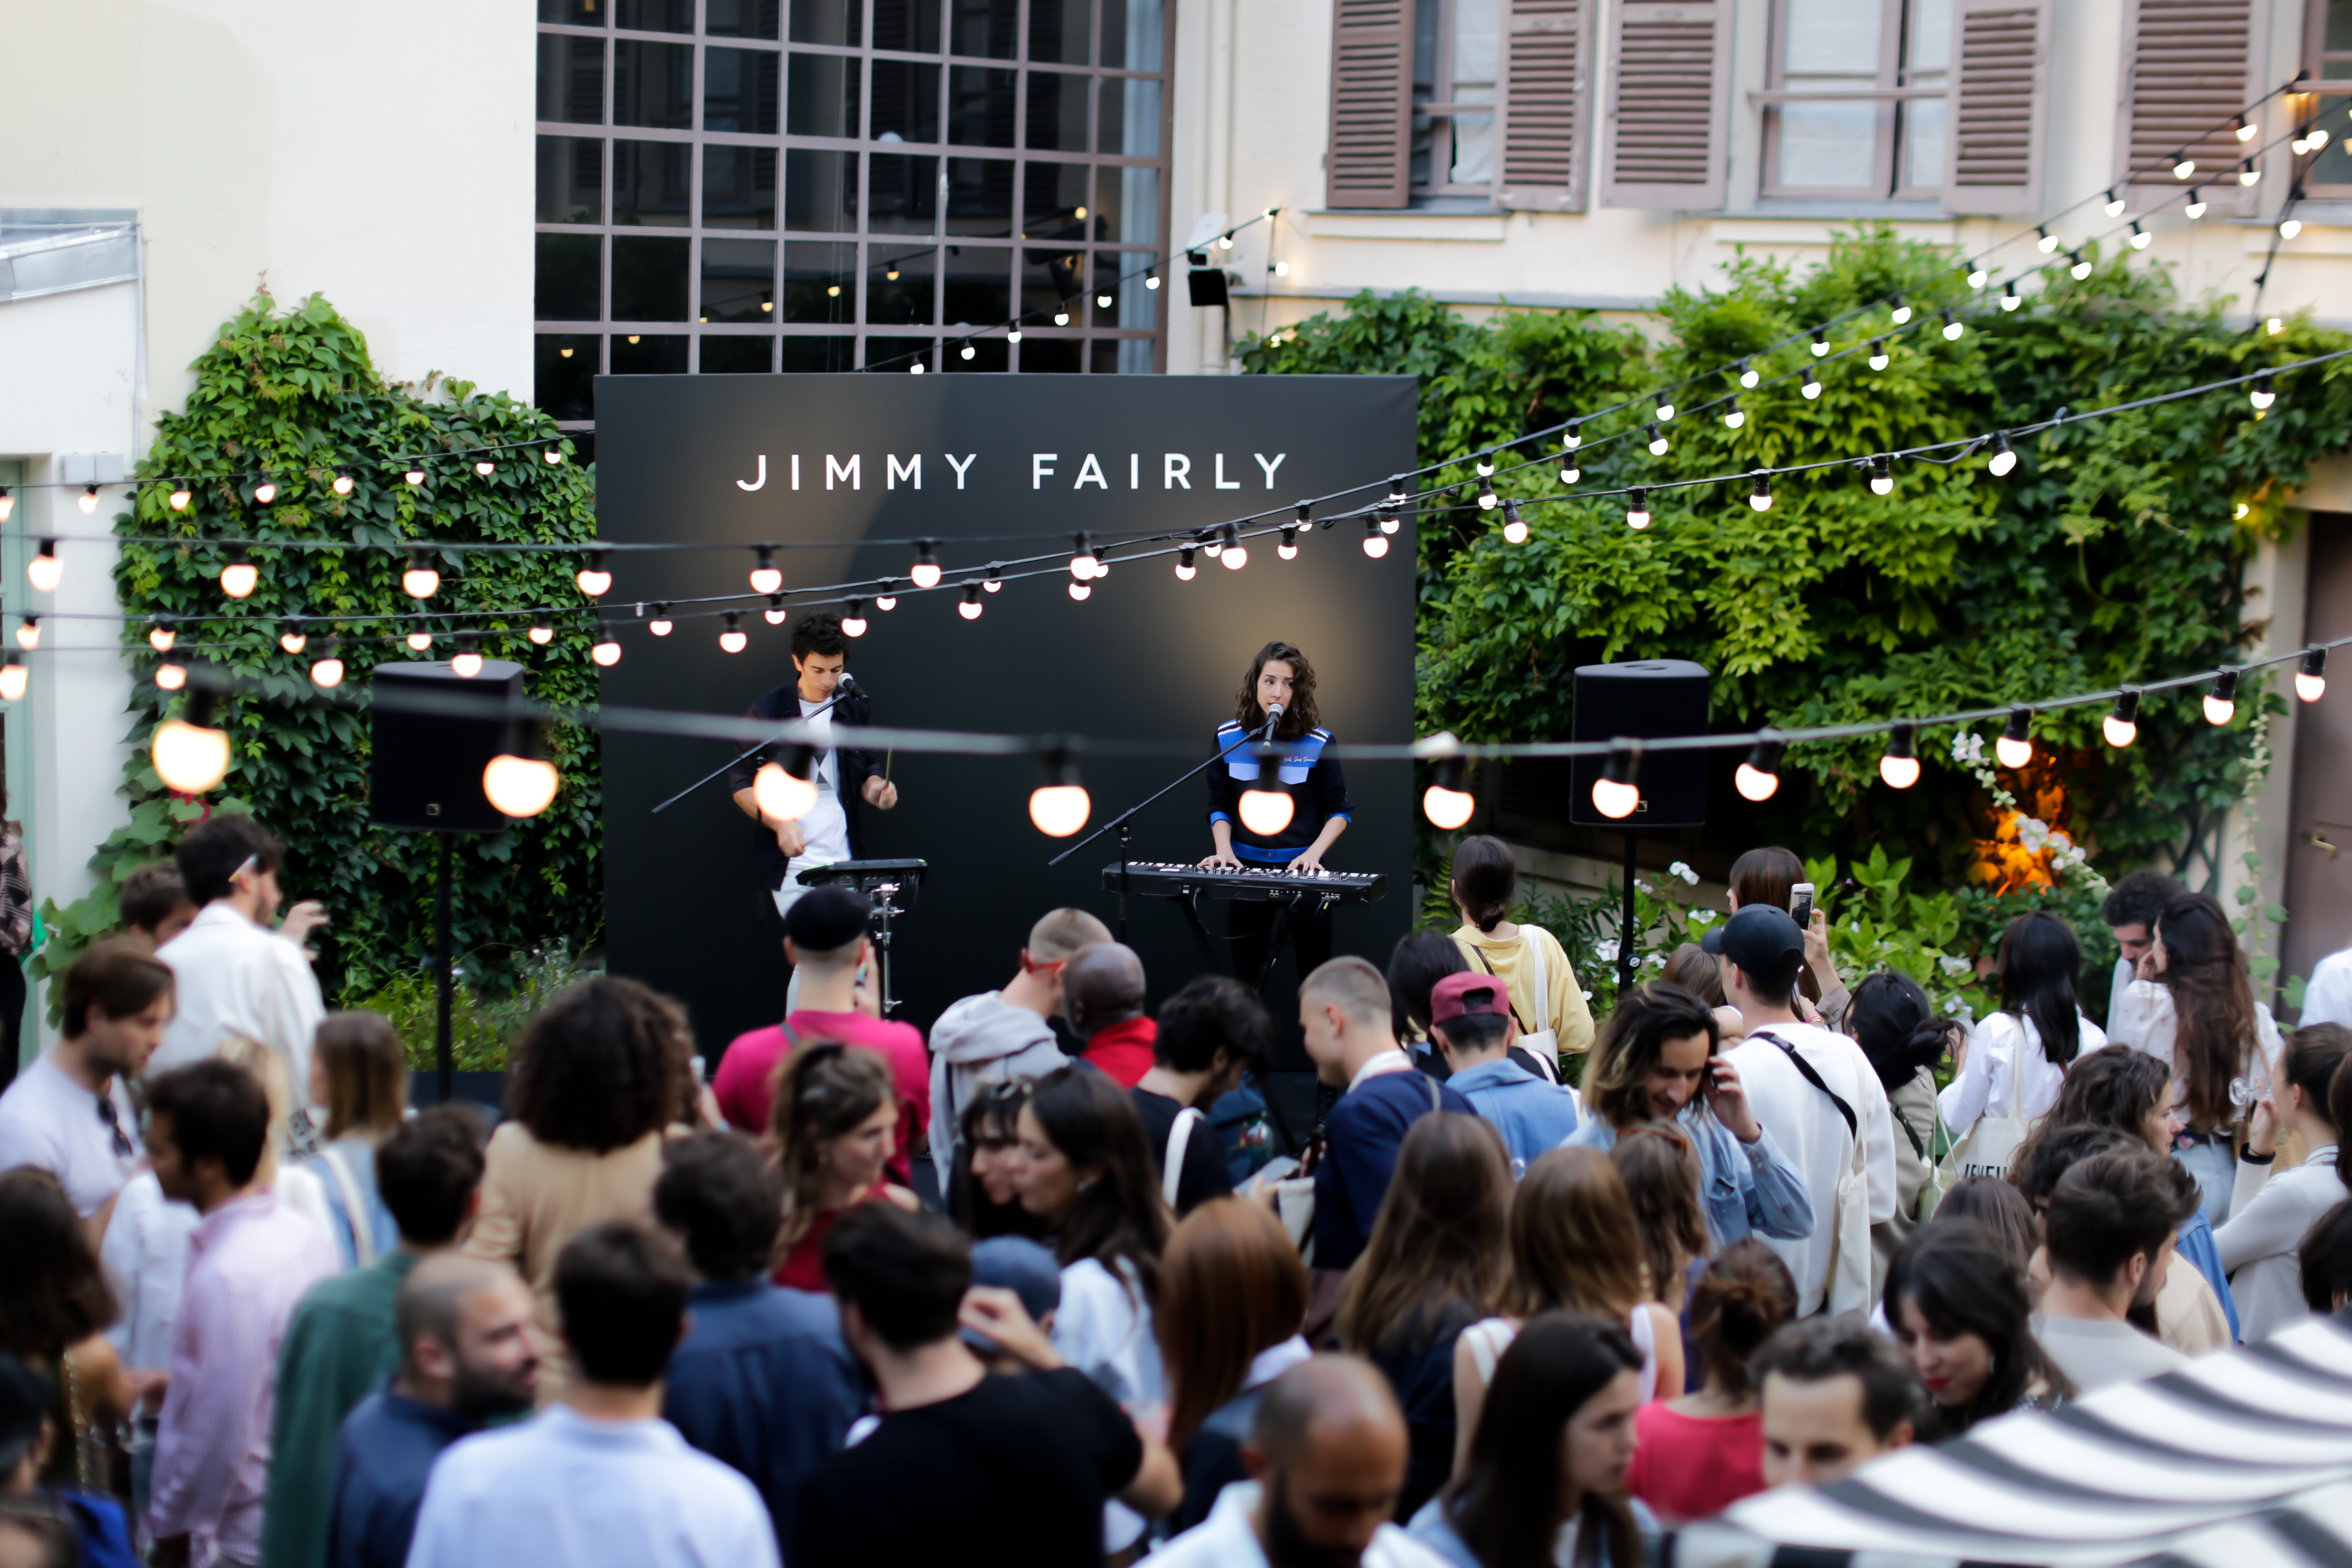 Jimmy Fairly Summer Party